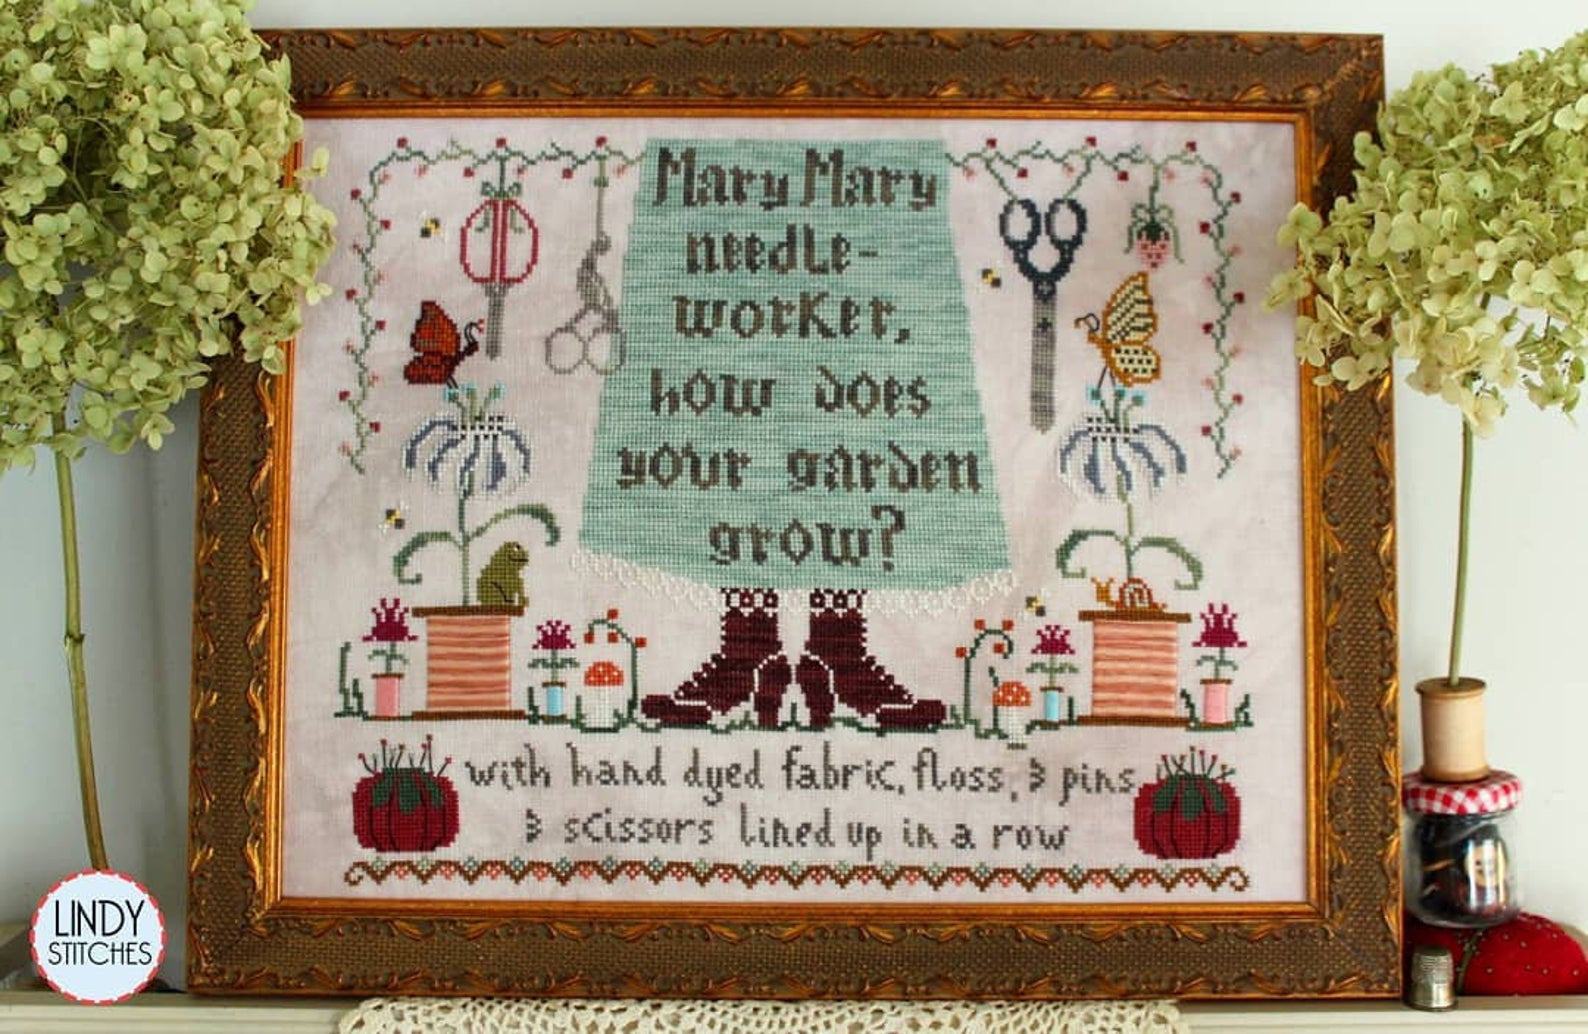 Mary, Mary Needleworker